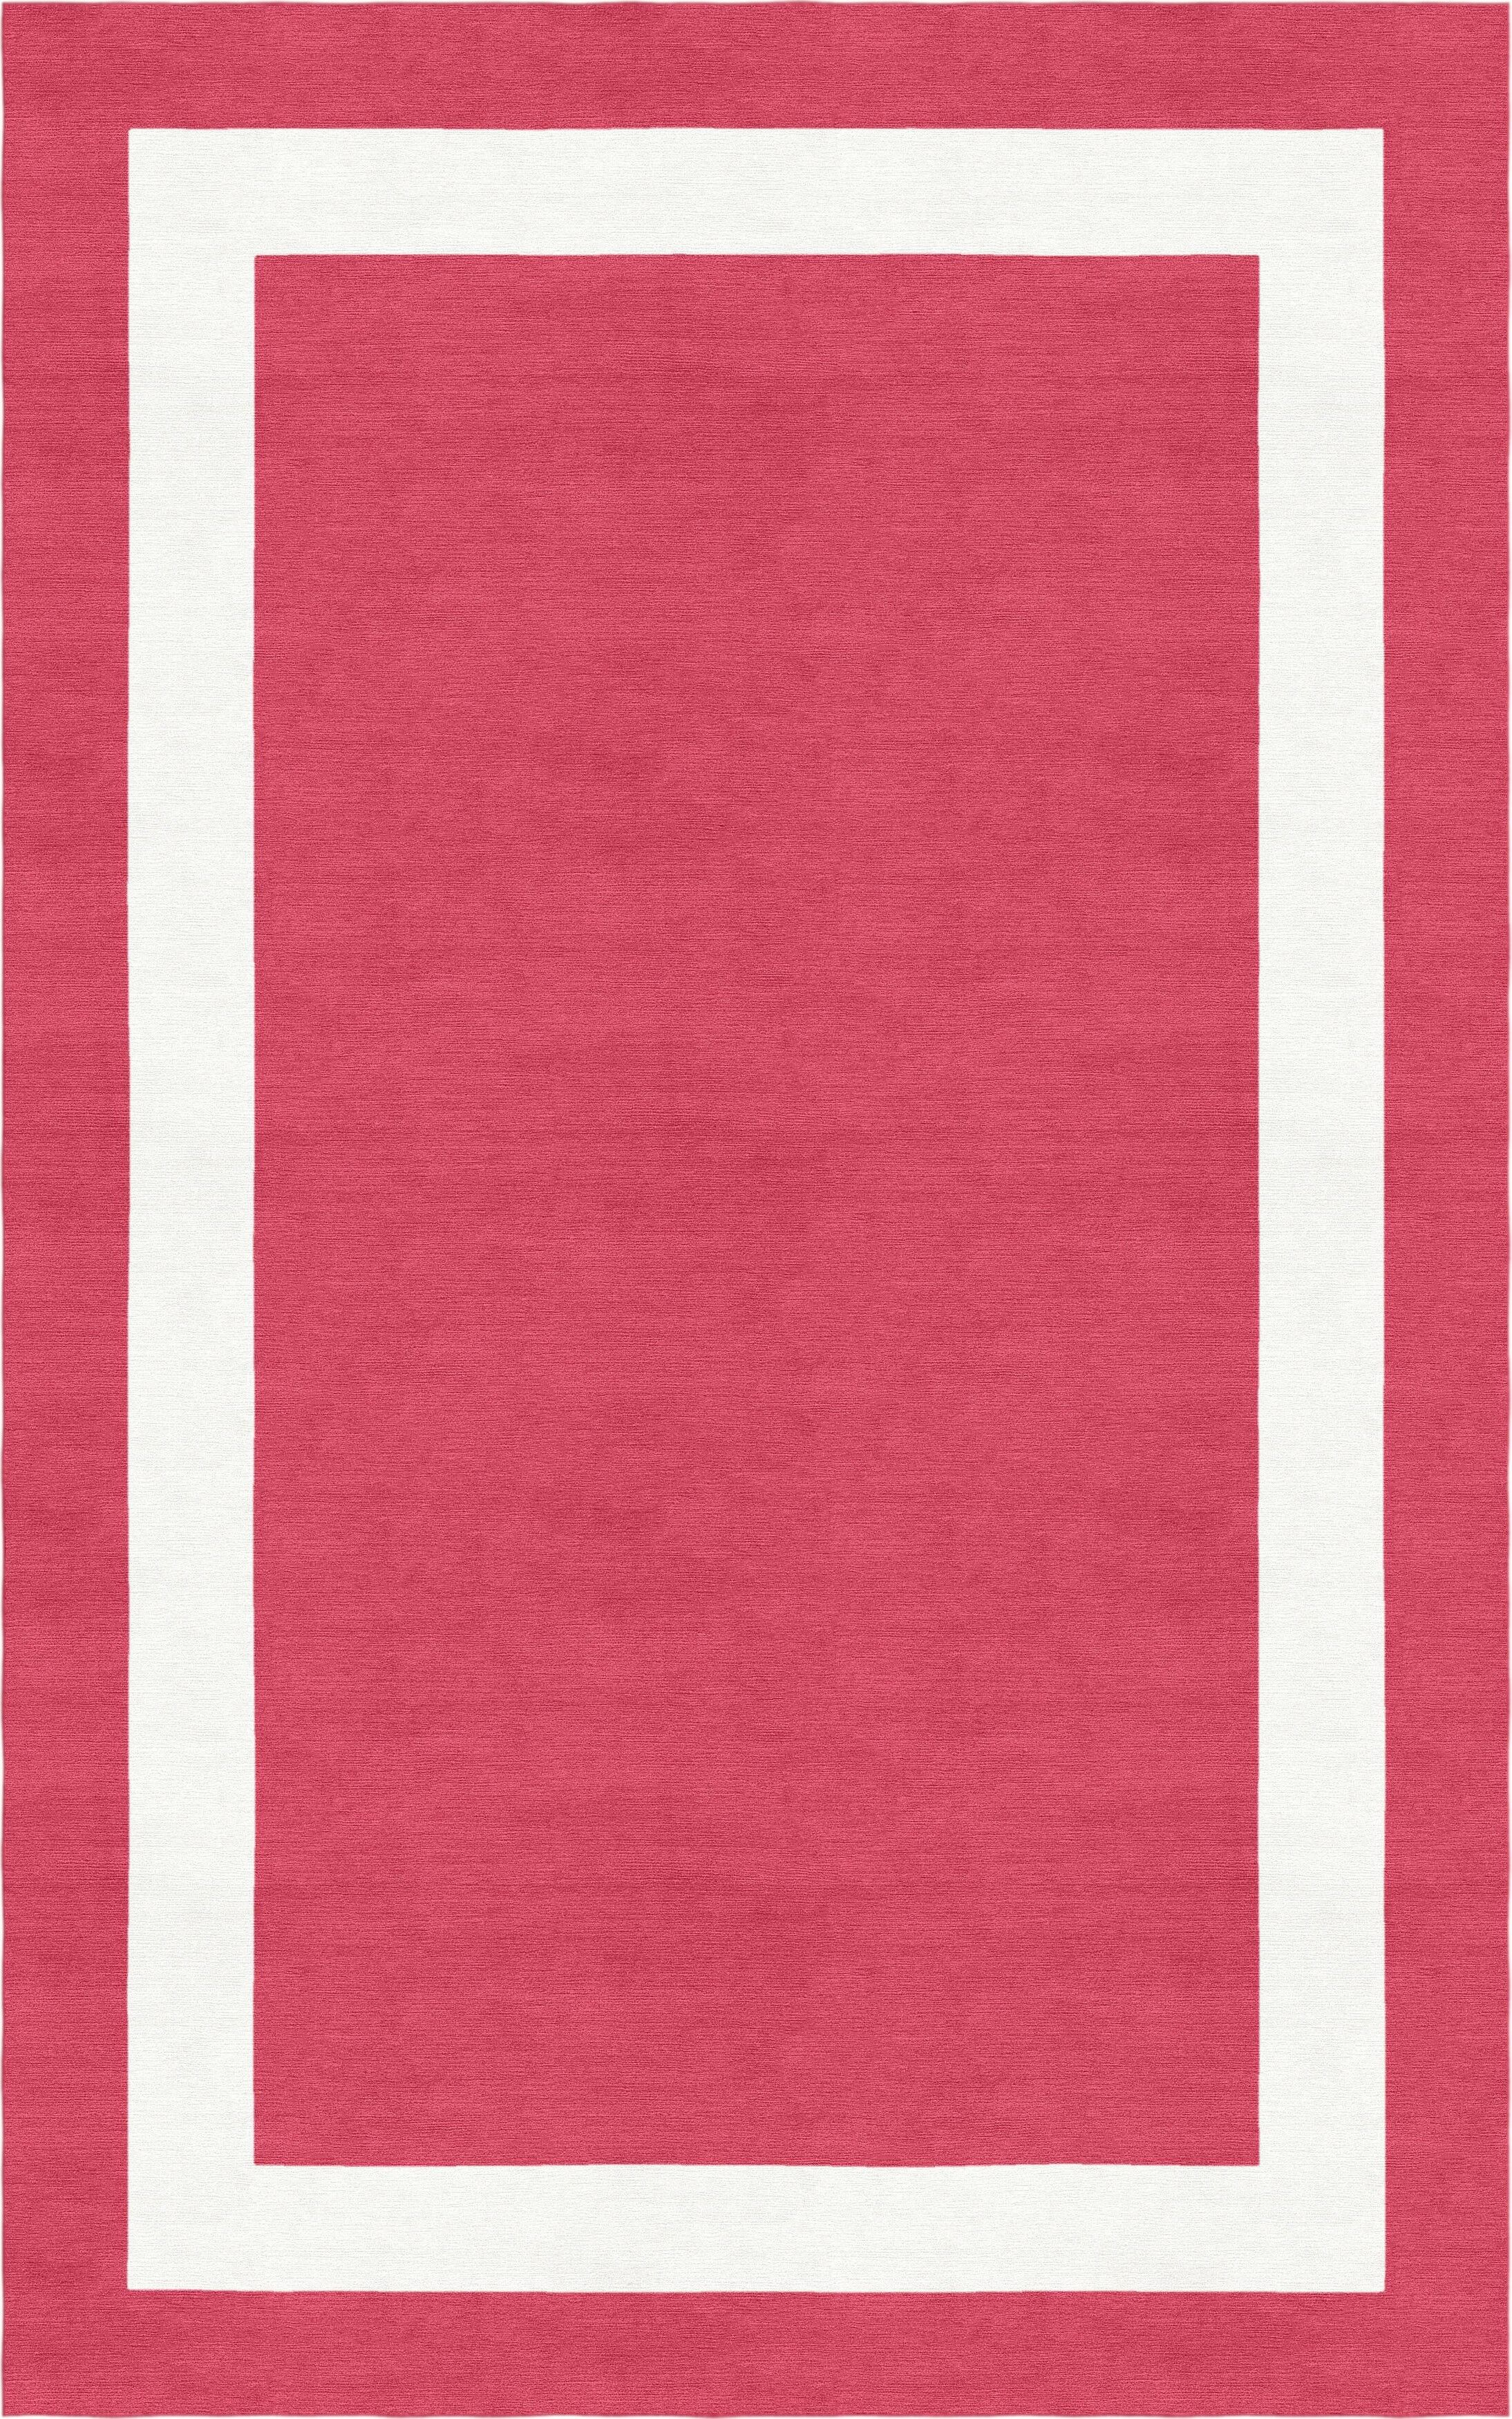 Wistrom Border Hand-Tufted Wool Red/White Area Rug Rug Size: Rectangle 6' x 9'